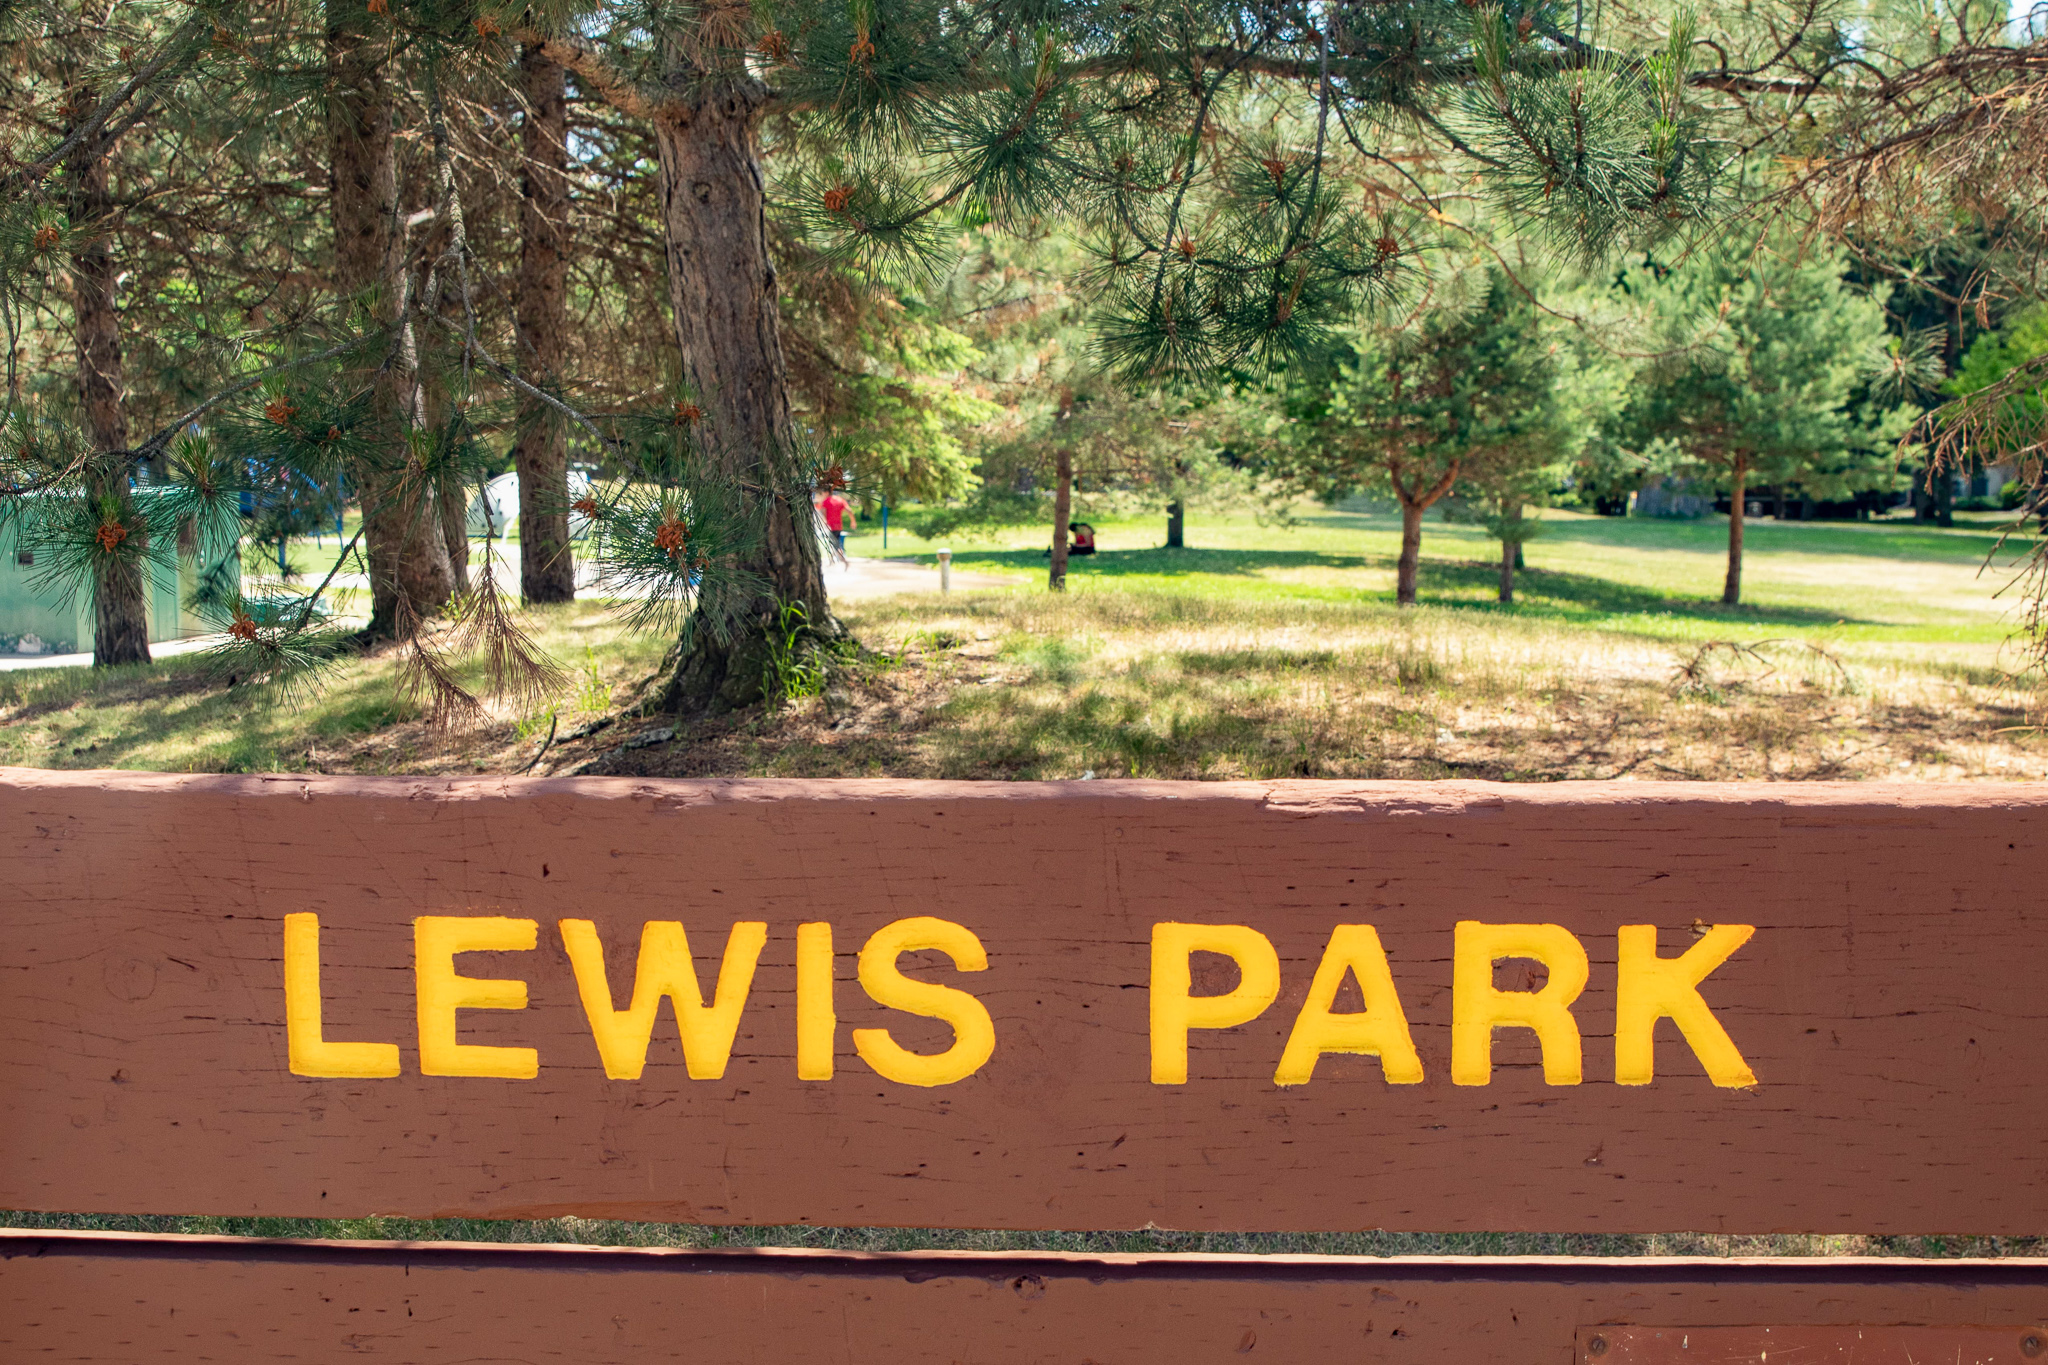 A large sign still identifies this as Lewis Park though its name was changed to honor civil rights figure Roy Wilkins, who grew up nearby. The Saint Paul City Council voted in March 2021 to rename the park.